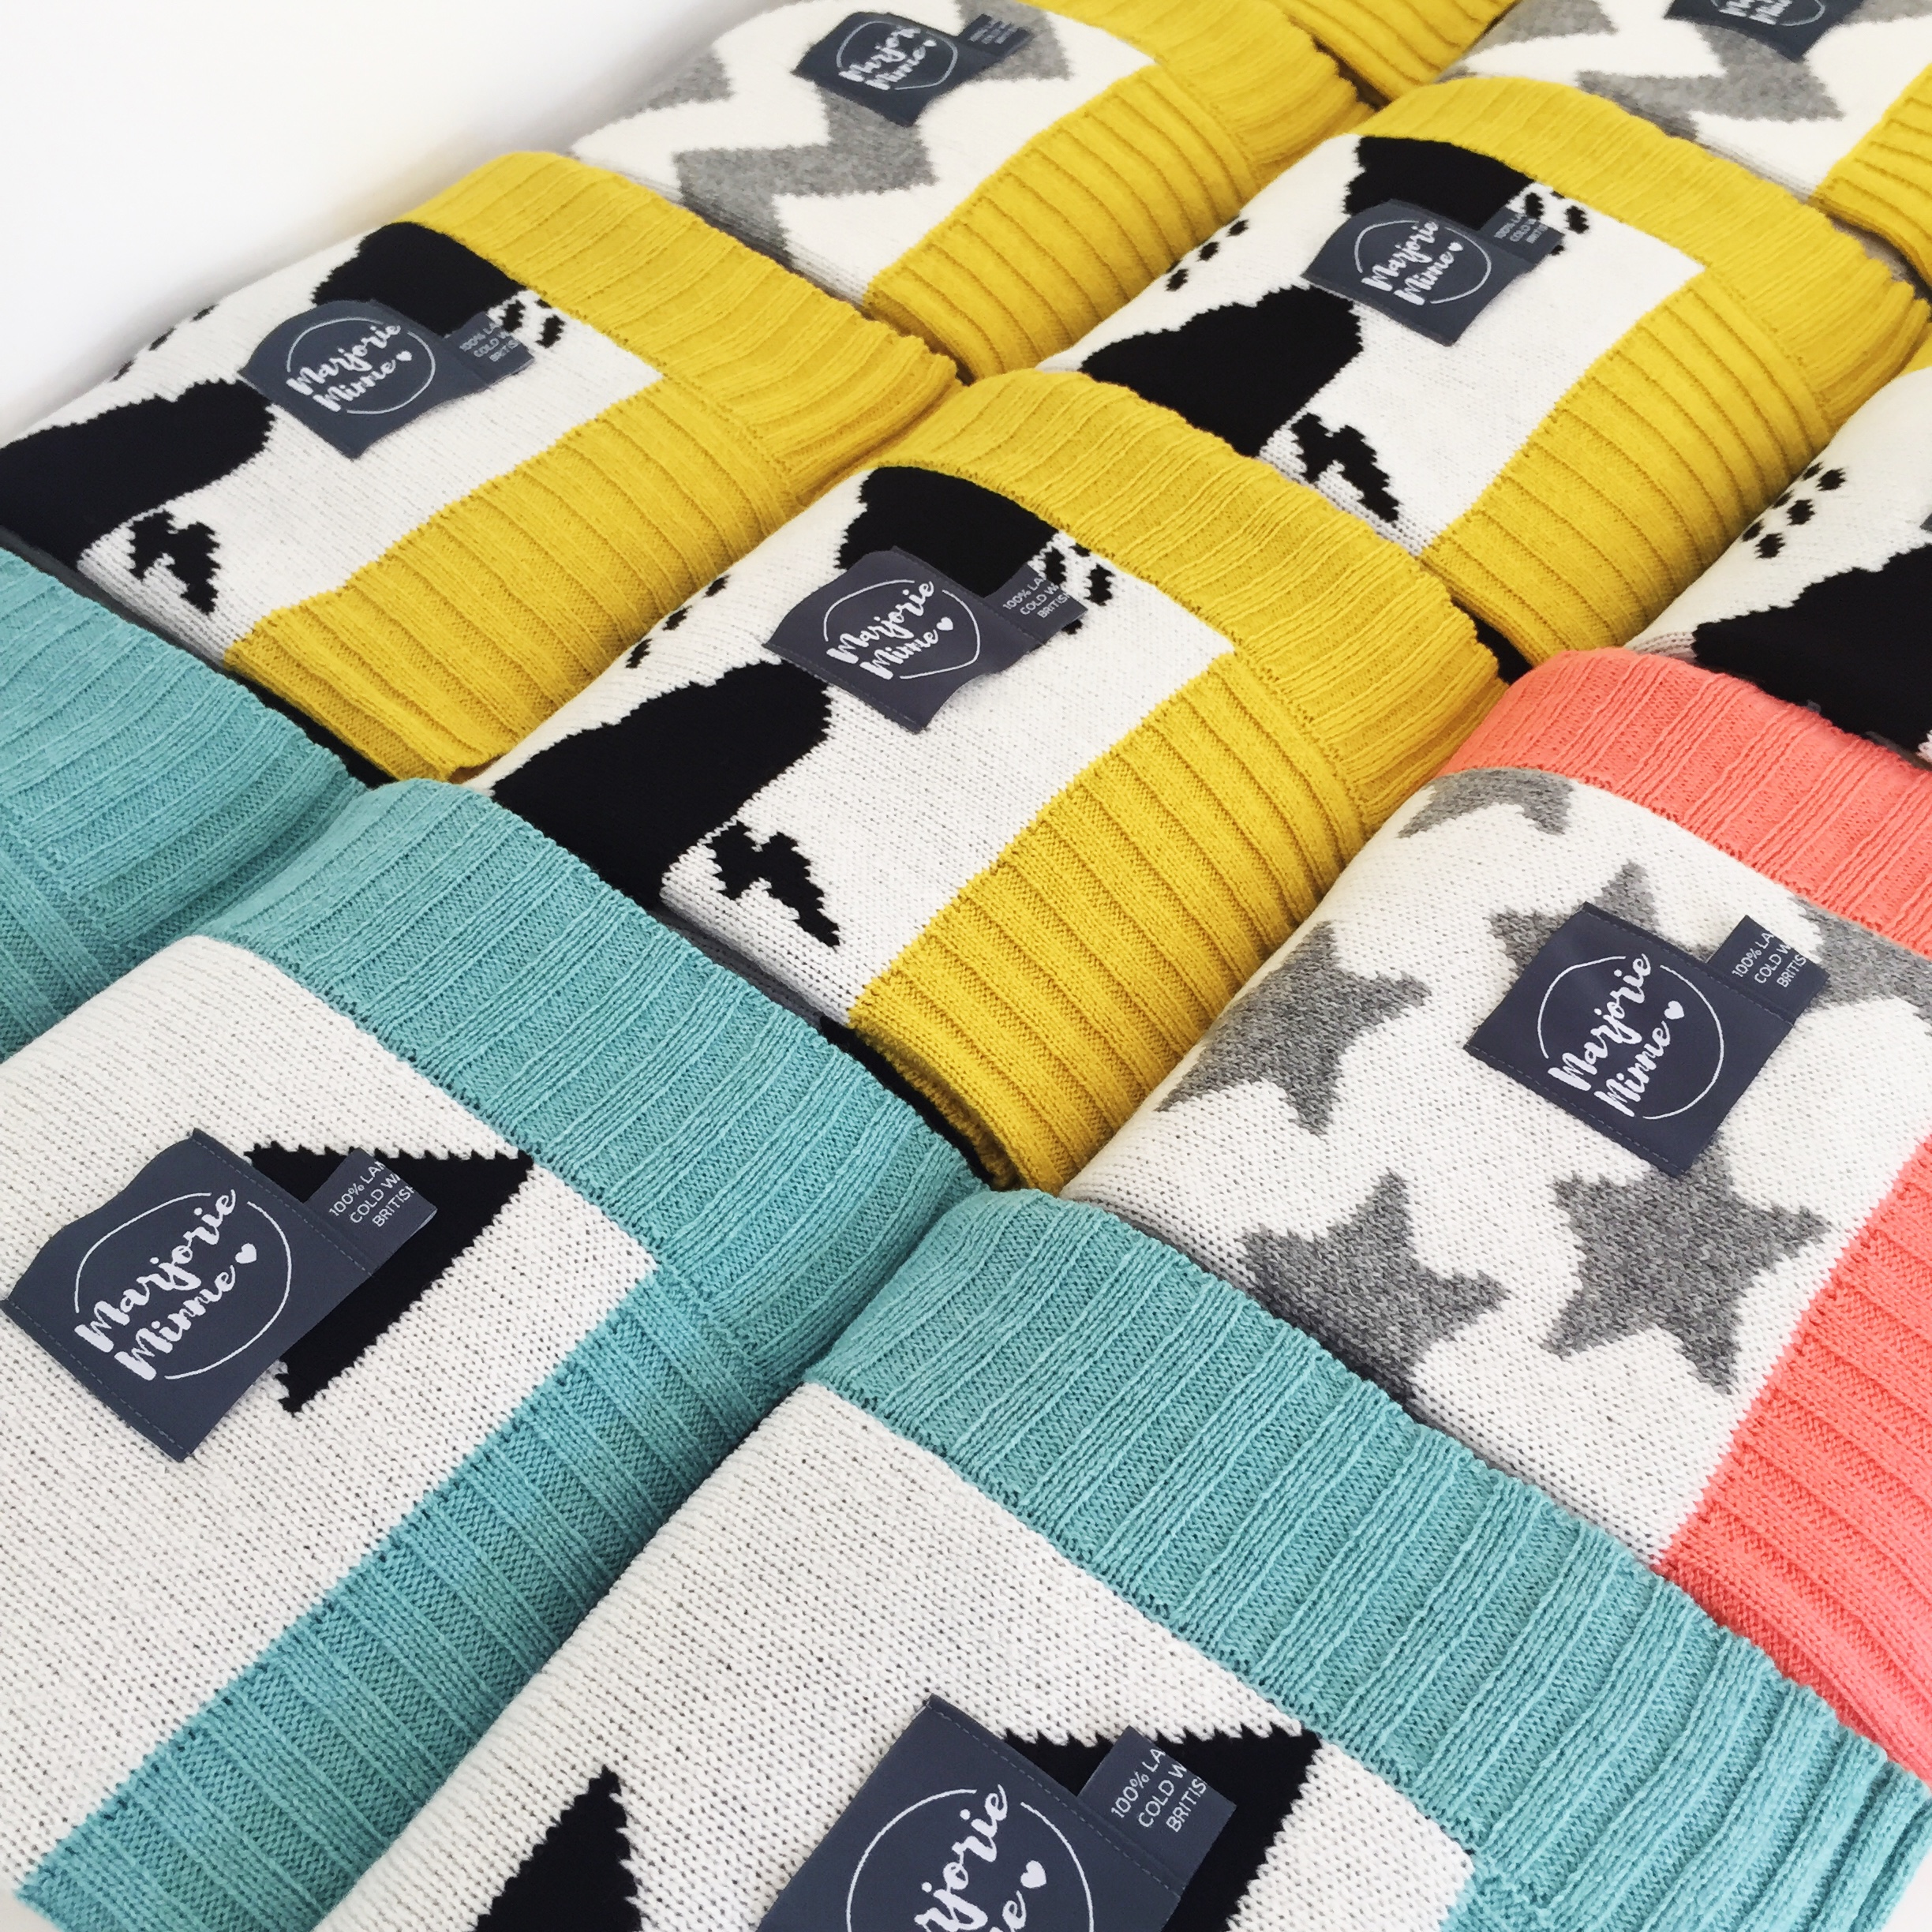 Marjorie Minnie blankets are all designed and hand finished in our home studio in Bath. Photo: Gaby Durnford